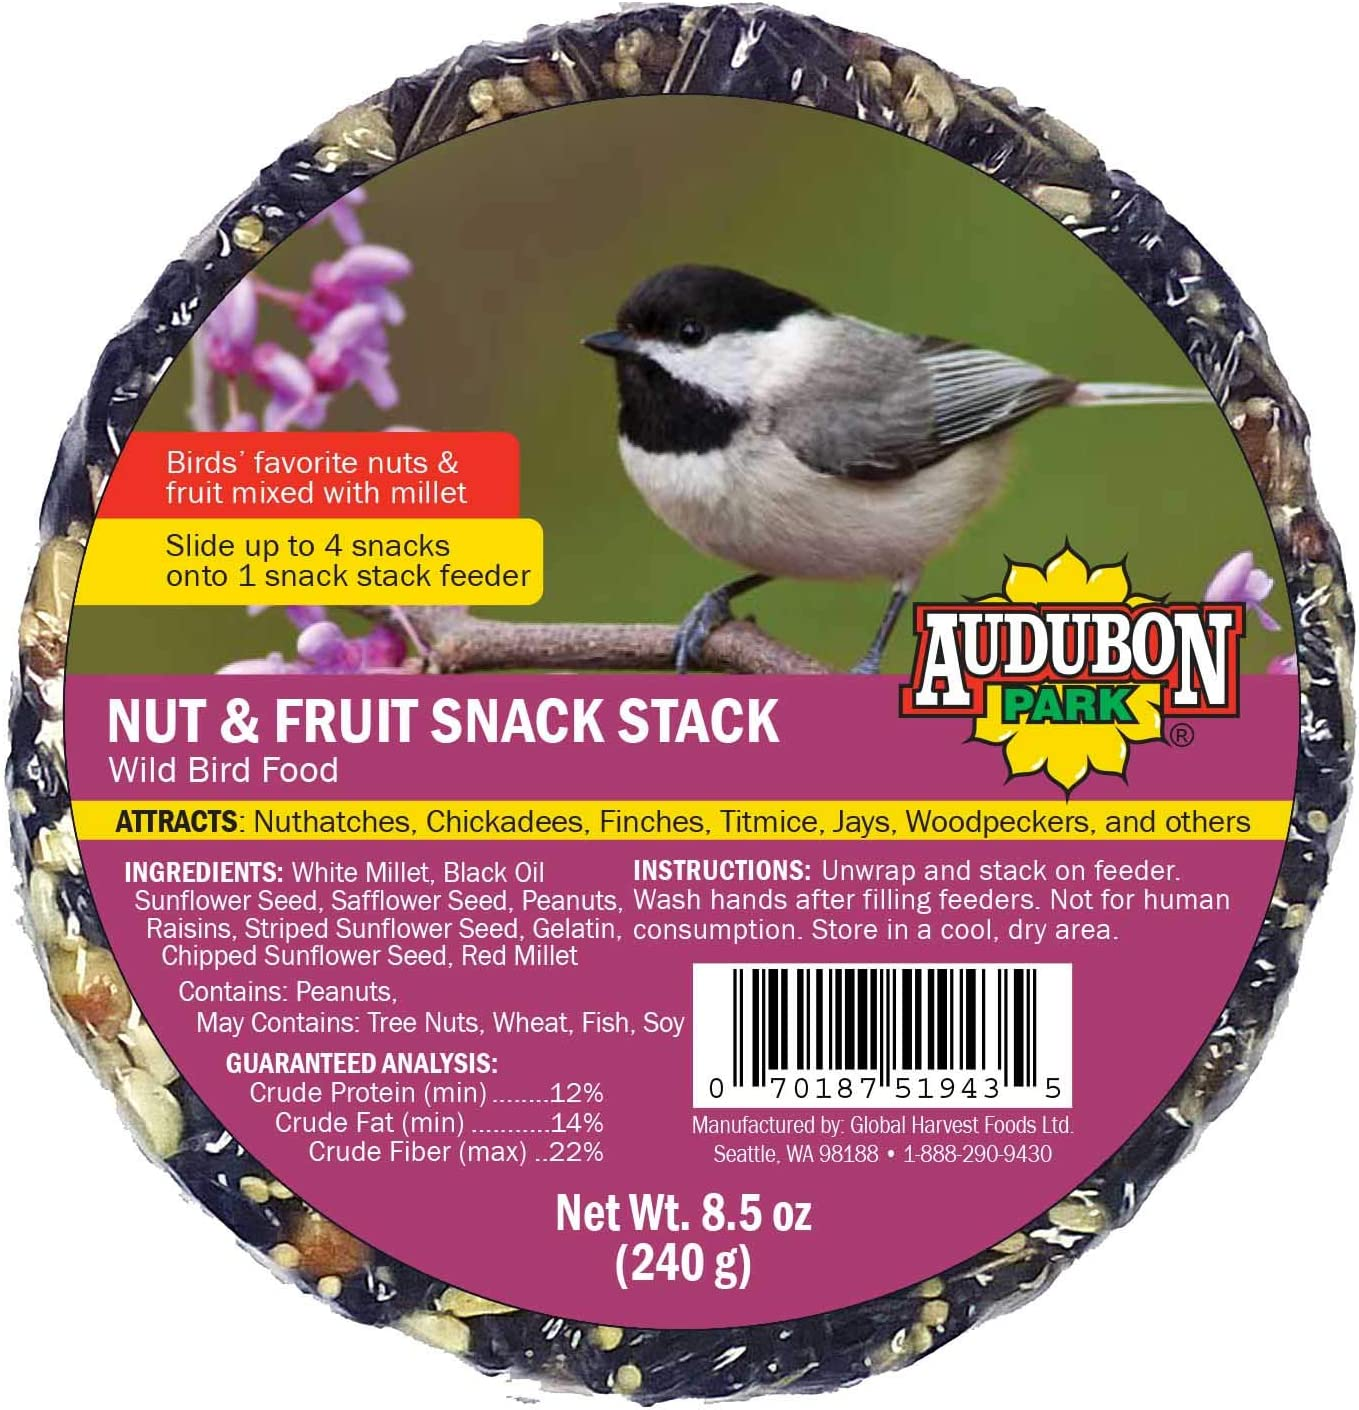 Audubon Park 13142 Nut and Fruit Snack Stack Wild Bird Food, 6-Pack